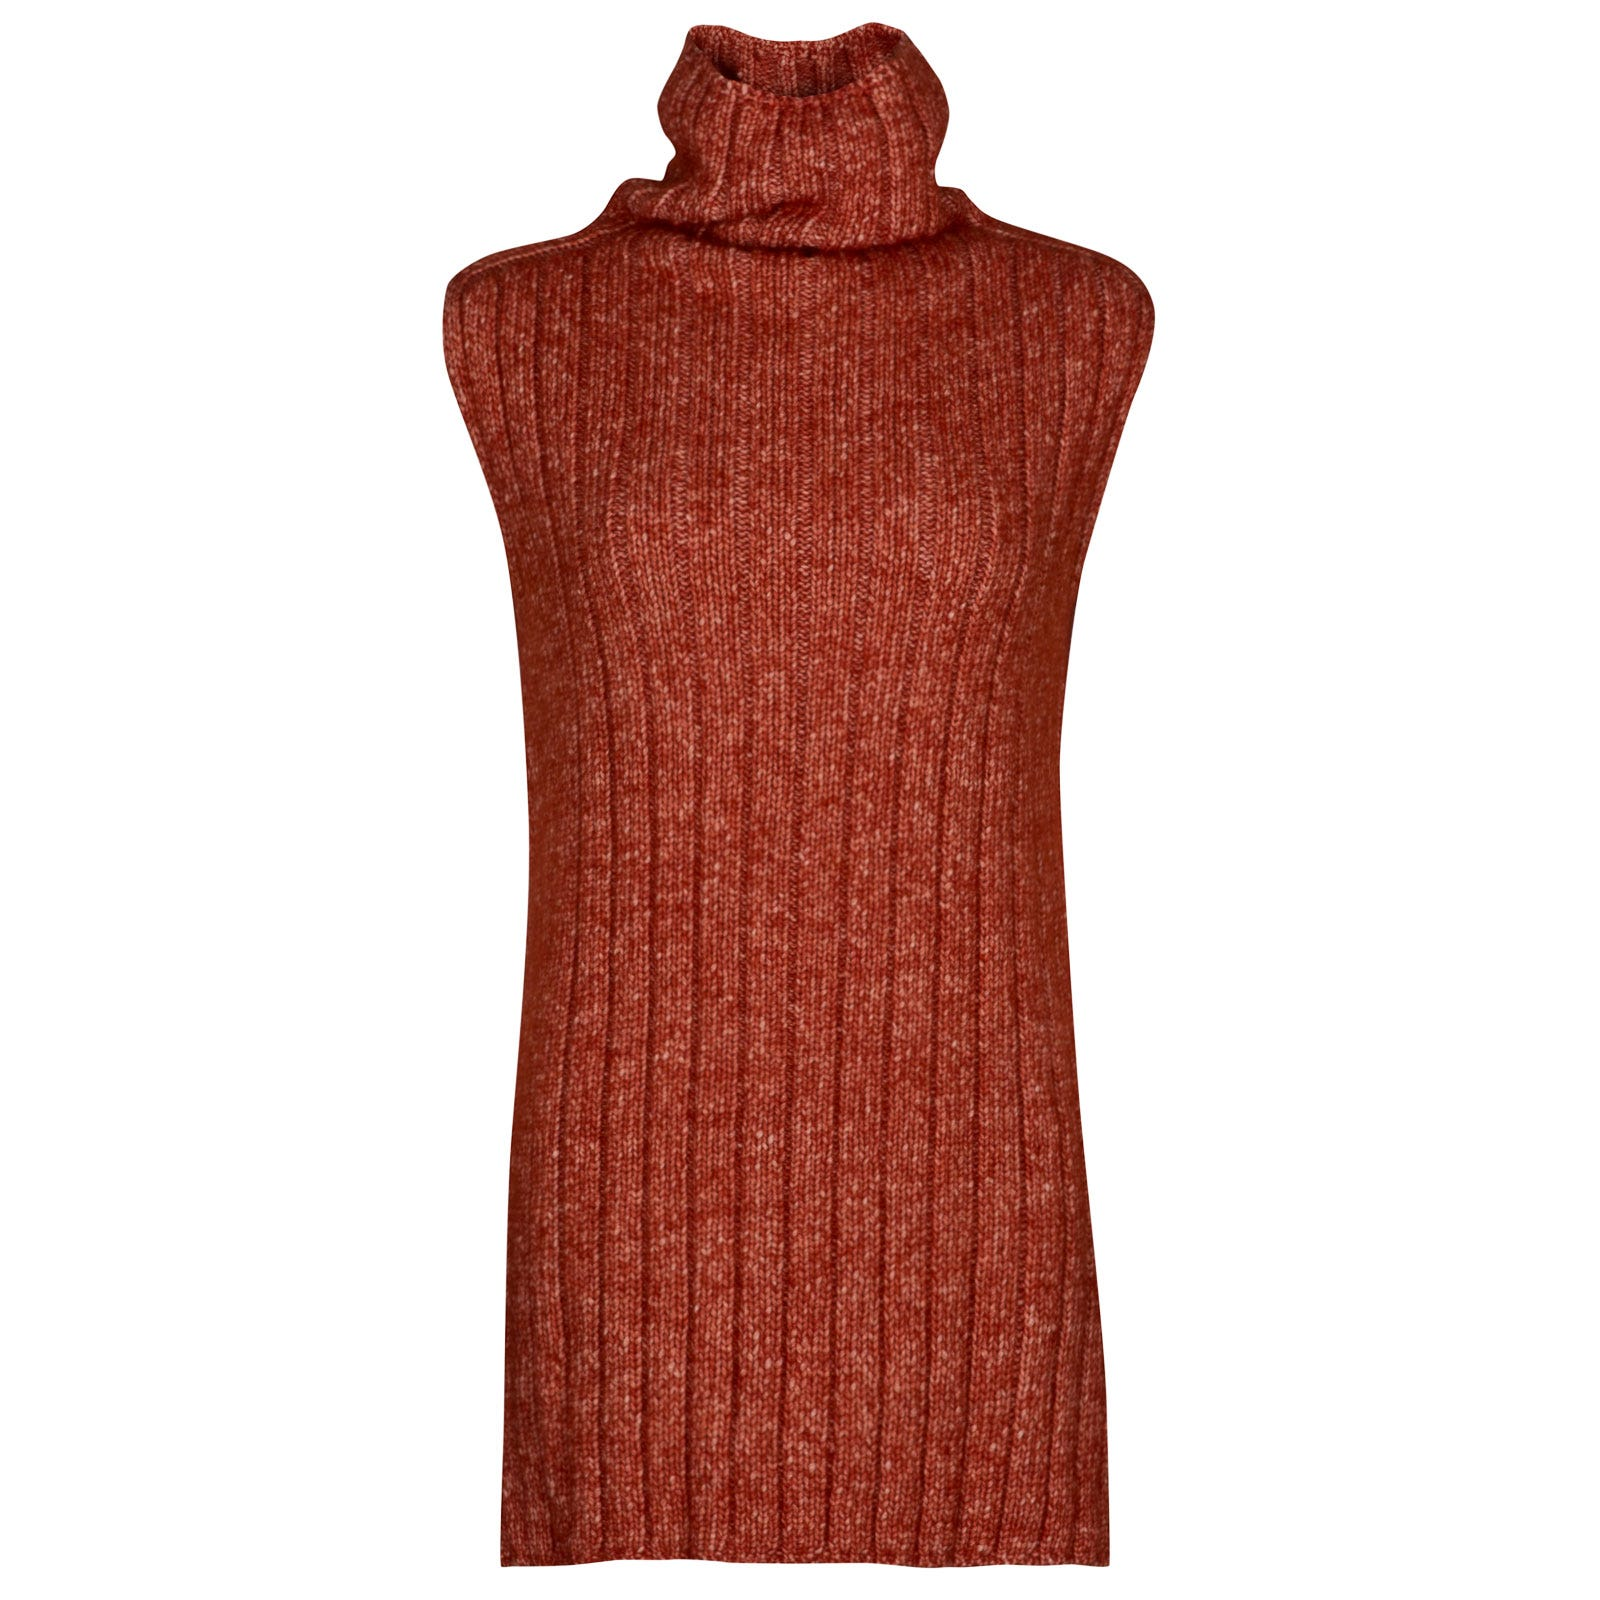 John Smedley conwy Alpaca, Wool & Cotton Sweater in Flare Orange-M